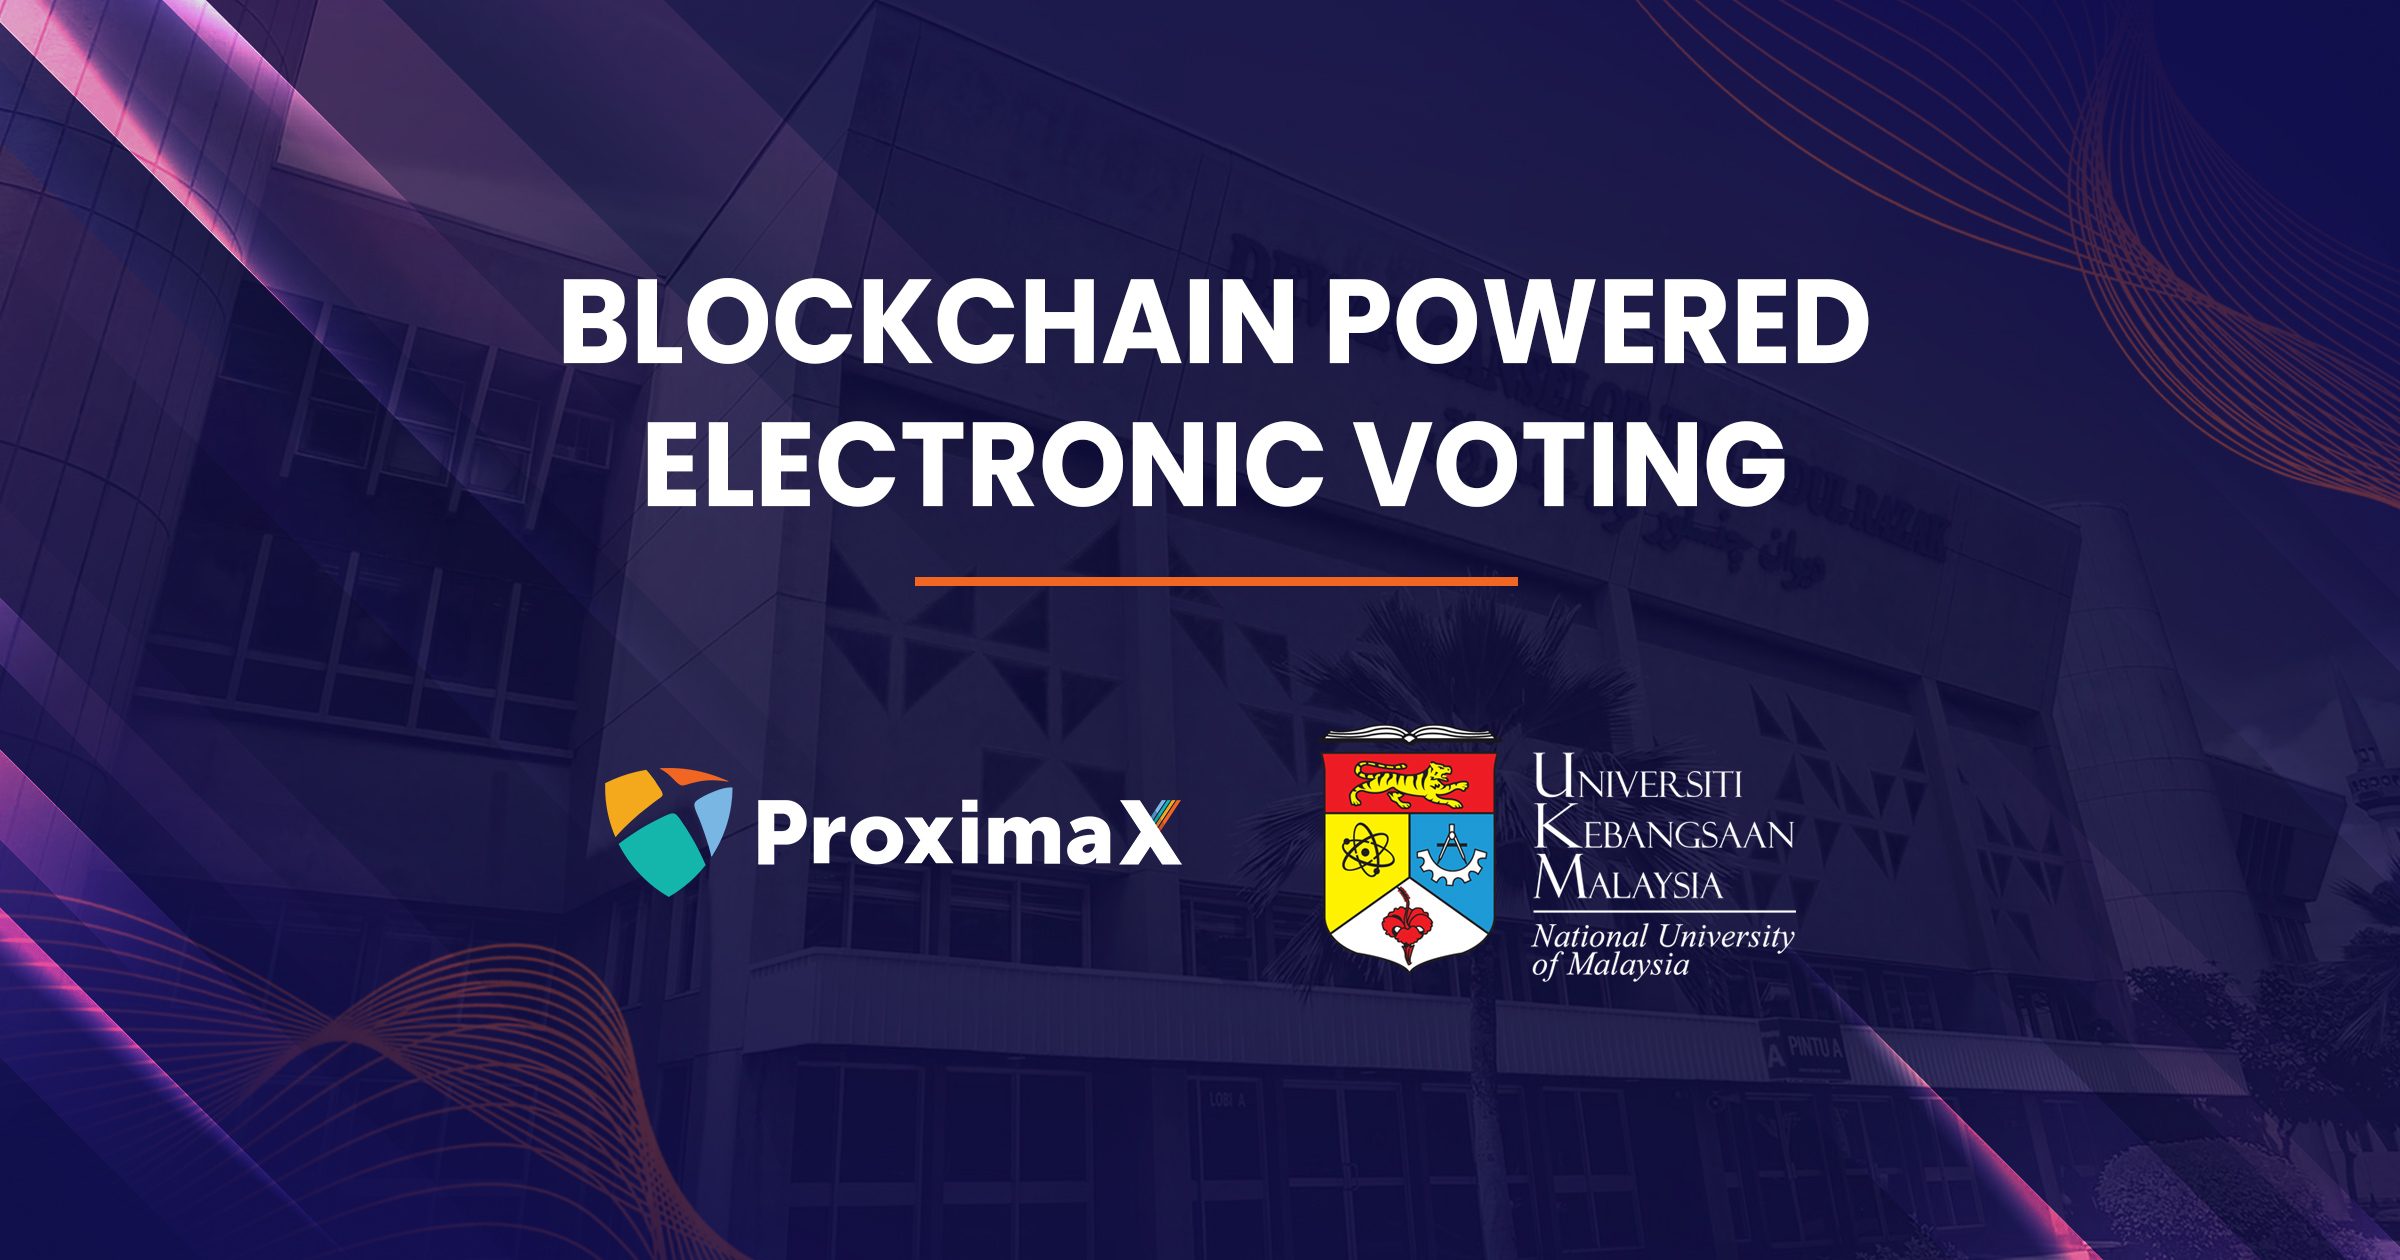 Electronic voting powered by blockchain at the National University of Malaysia